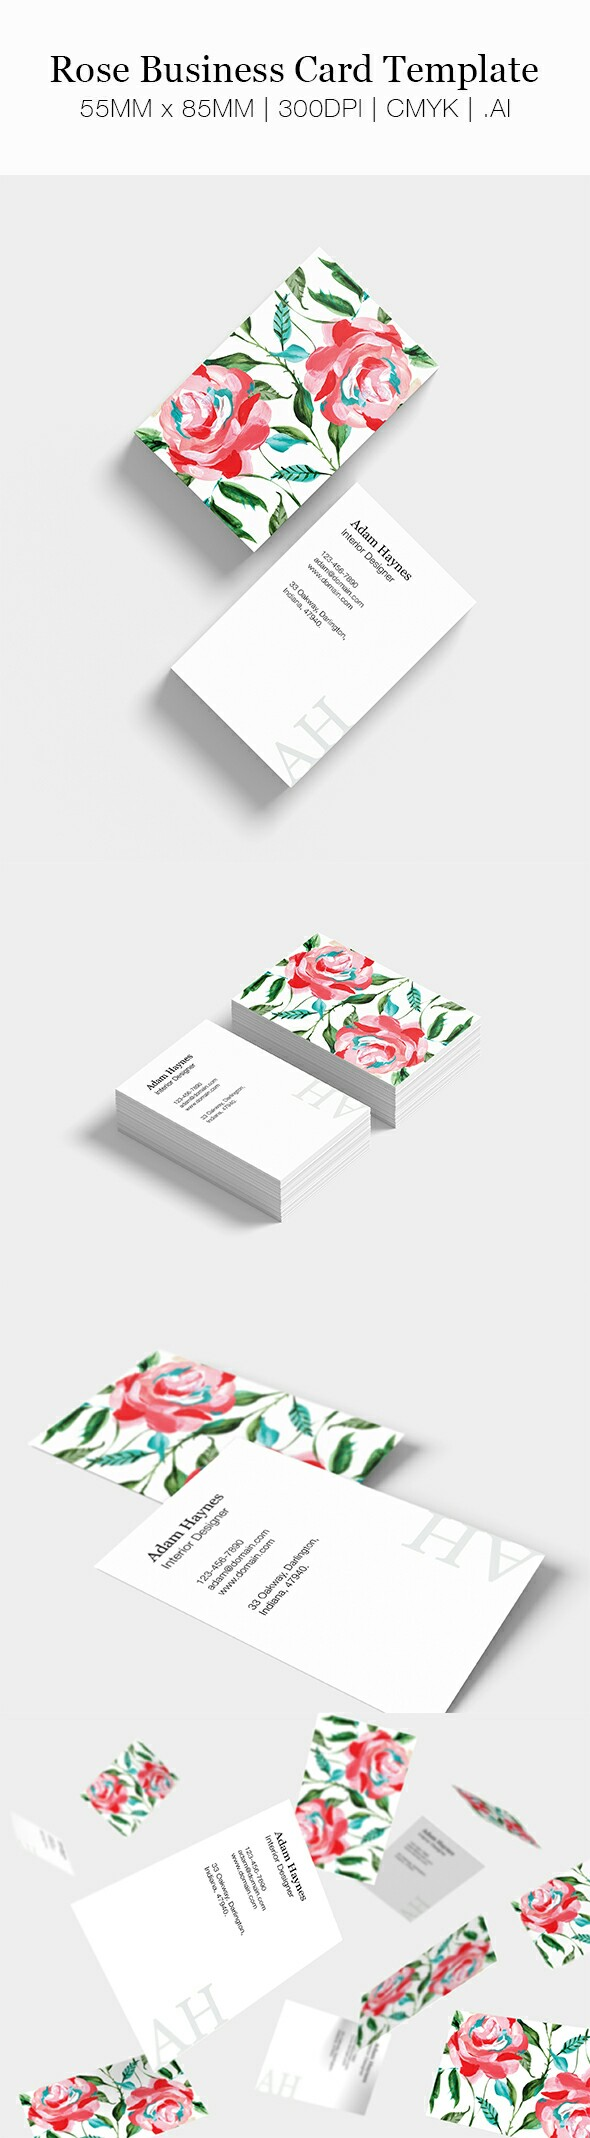 Floral Business Card Template 85mm X 55mm Floral Business Cards Business Cards Minimal Simple Business Cards